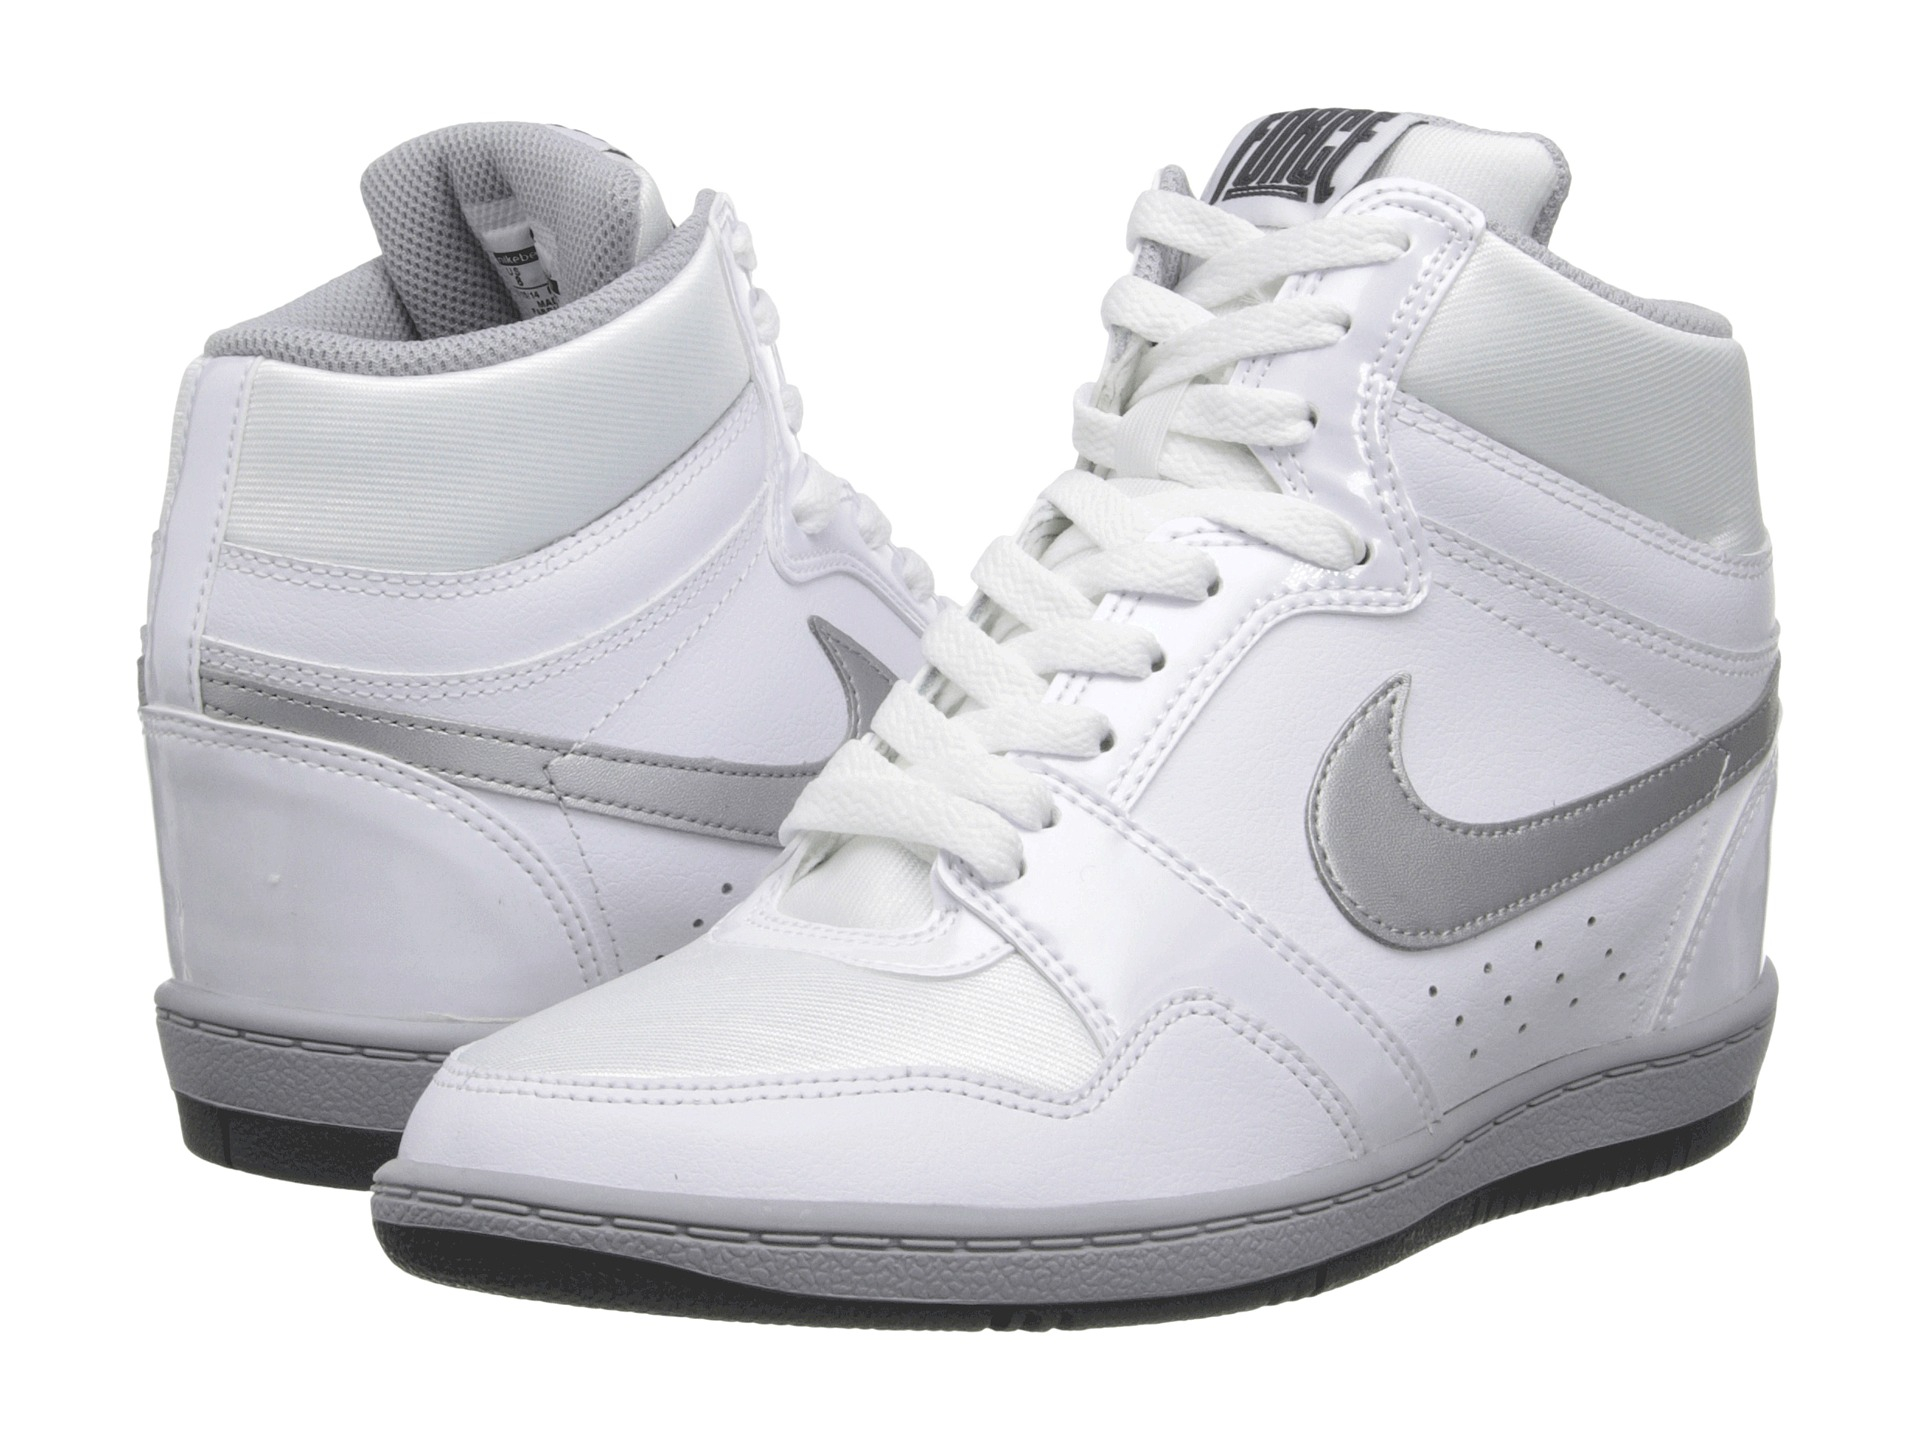 lyst nike force sky high sneaker wedge in white. Black Bedroom Furniture Sets. Home Design Ideas